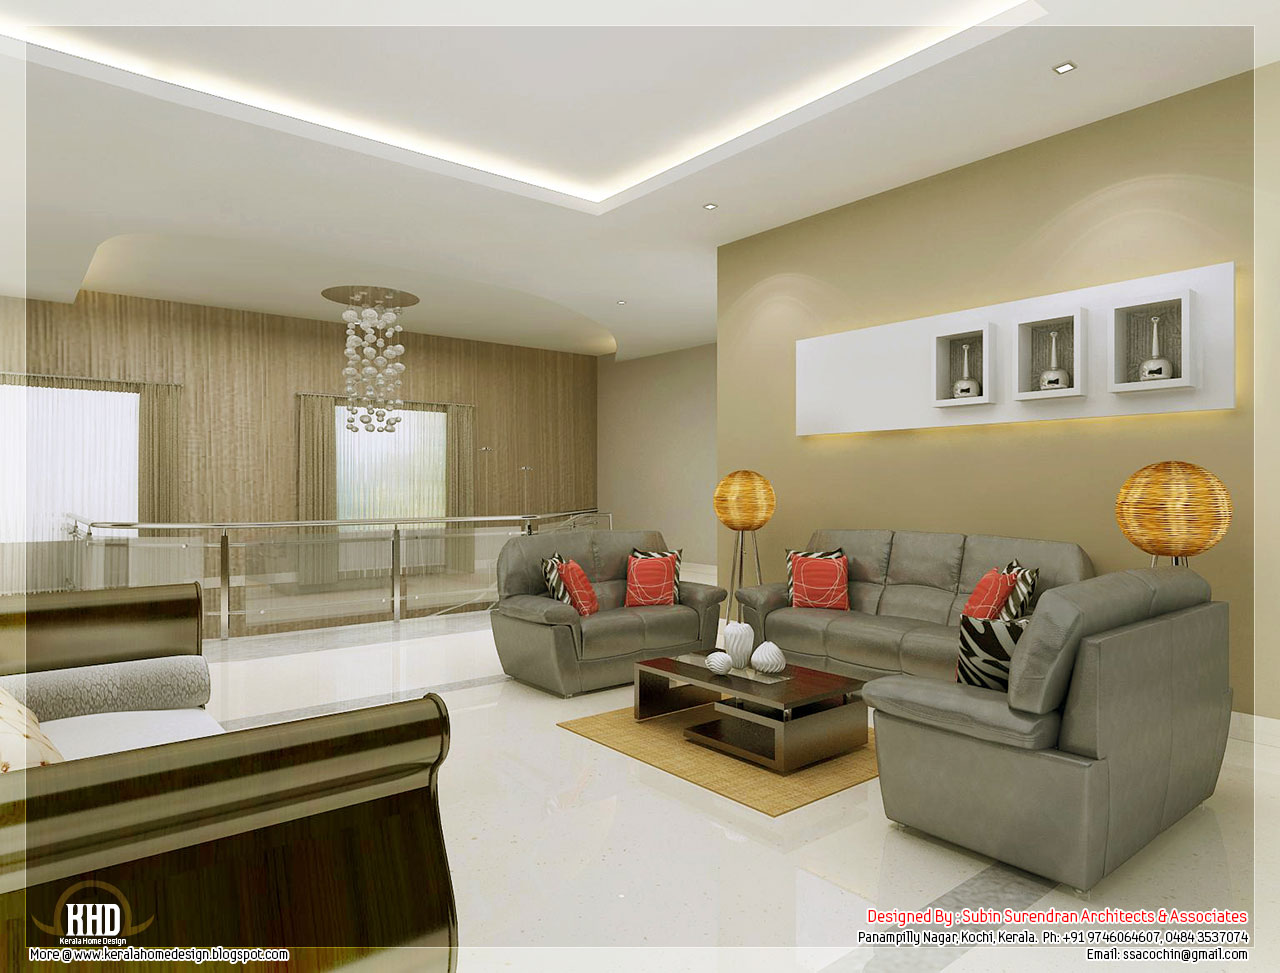 Awesome 3d interior renderings kerala home design and floor plans - Home design inside ...